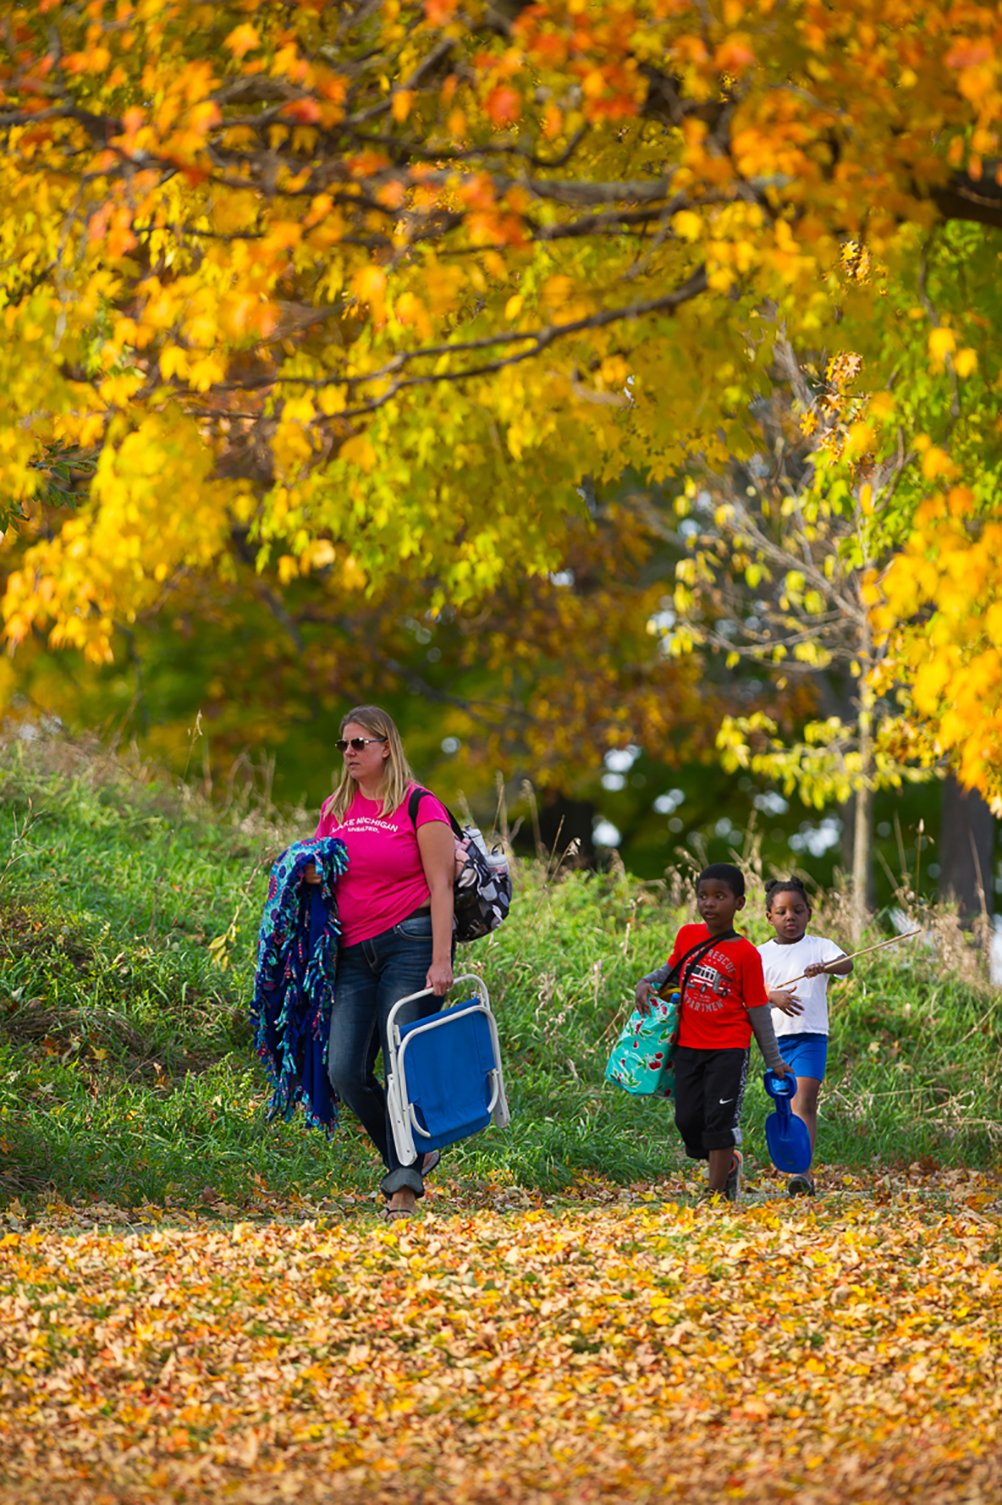 A family on a fall camping outing at the Pinckney Recreation Area, which is located in Livingston and Washtenaw counties.